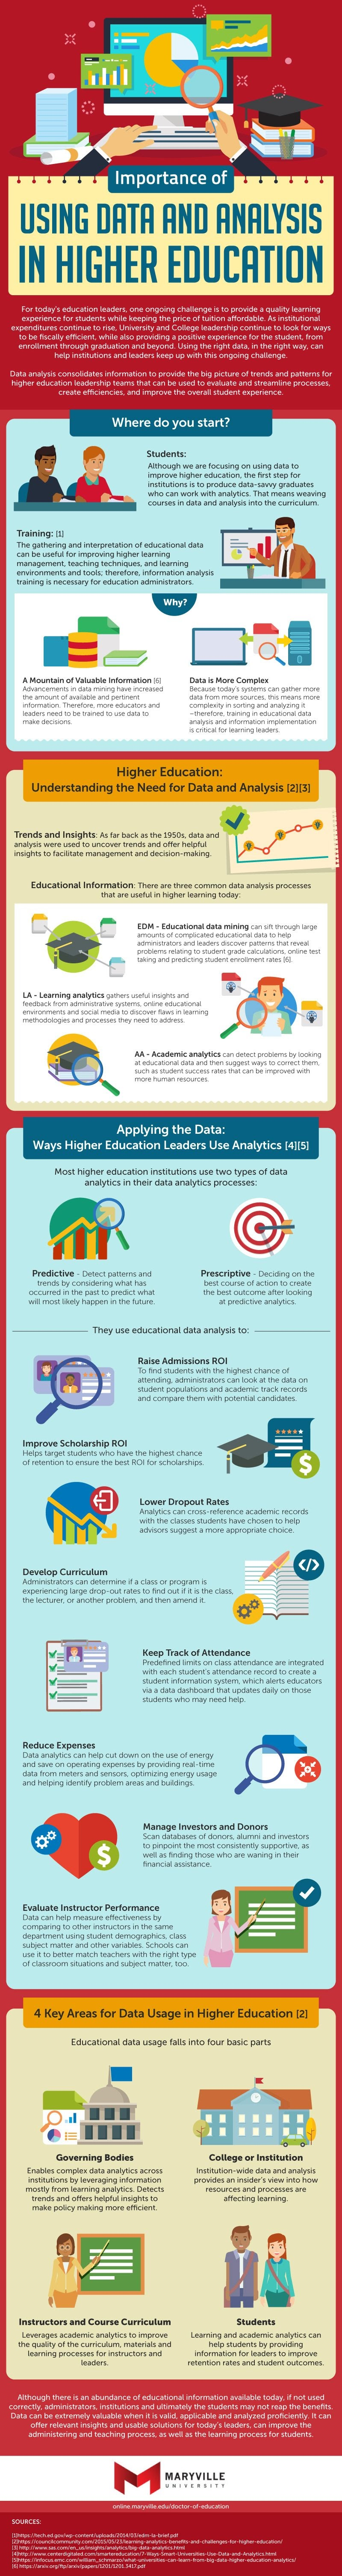 Using Data and Analysis in Higher Education #infographic